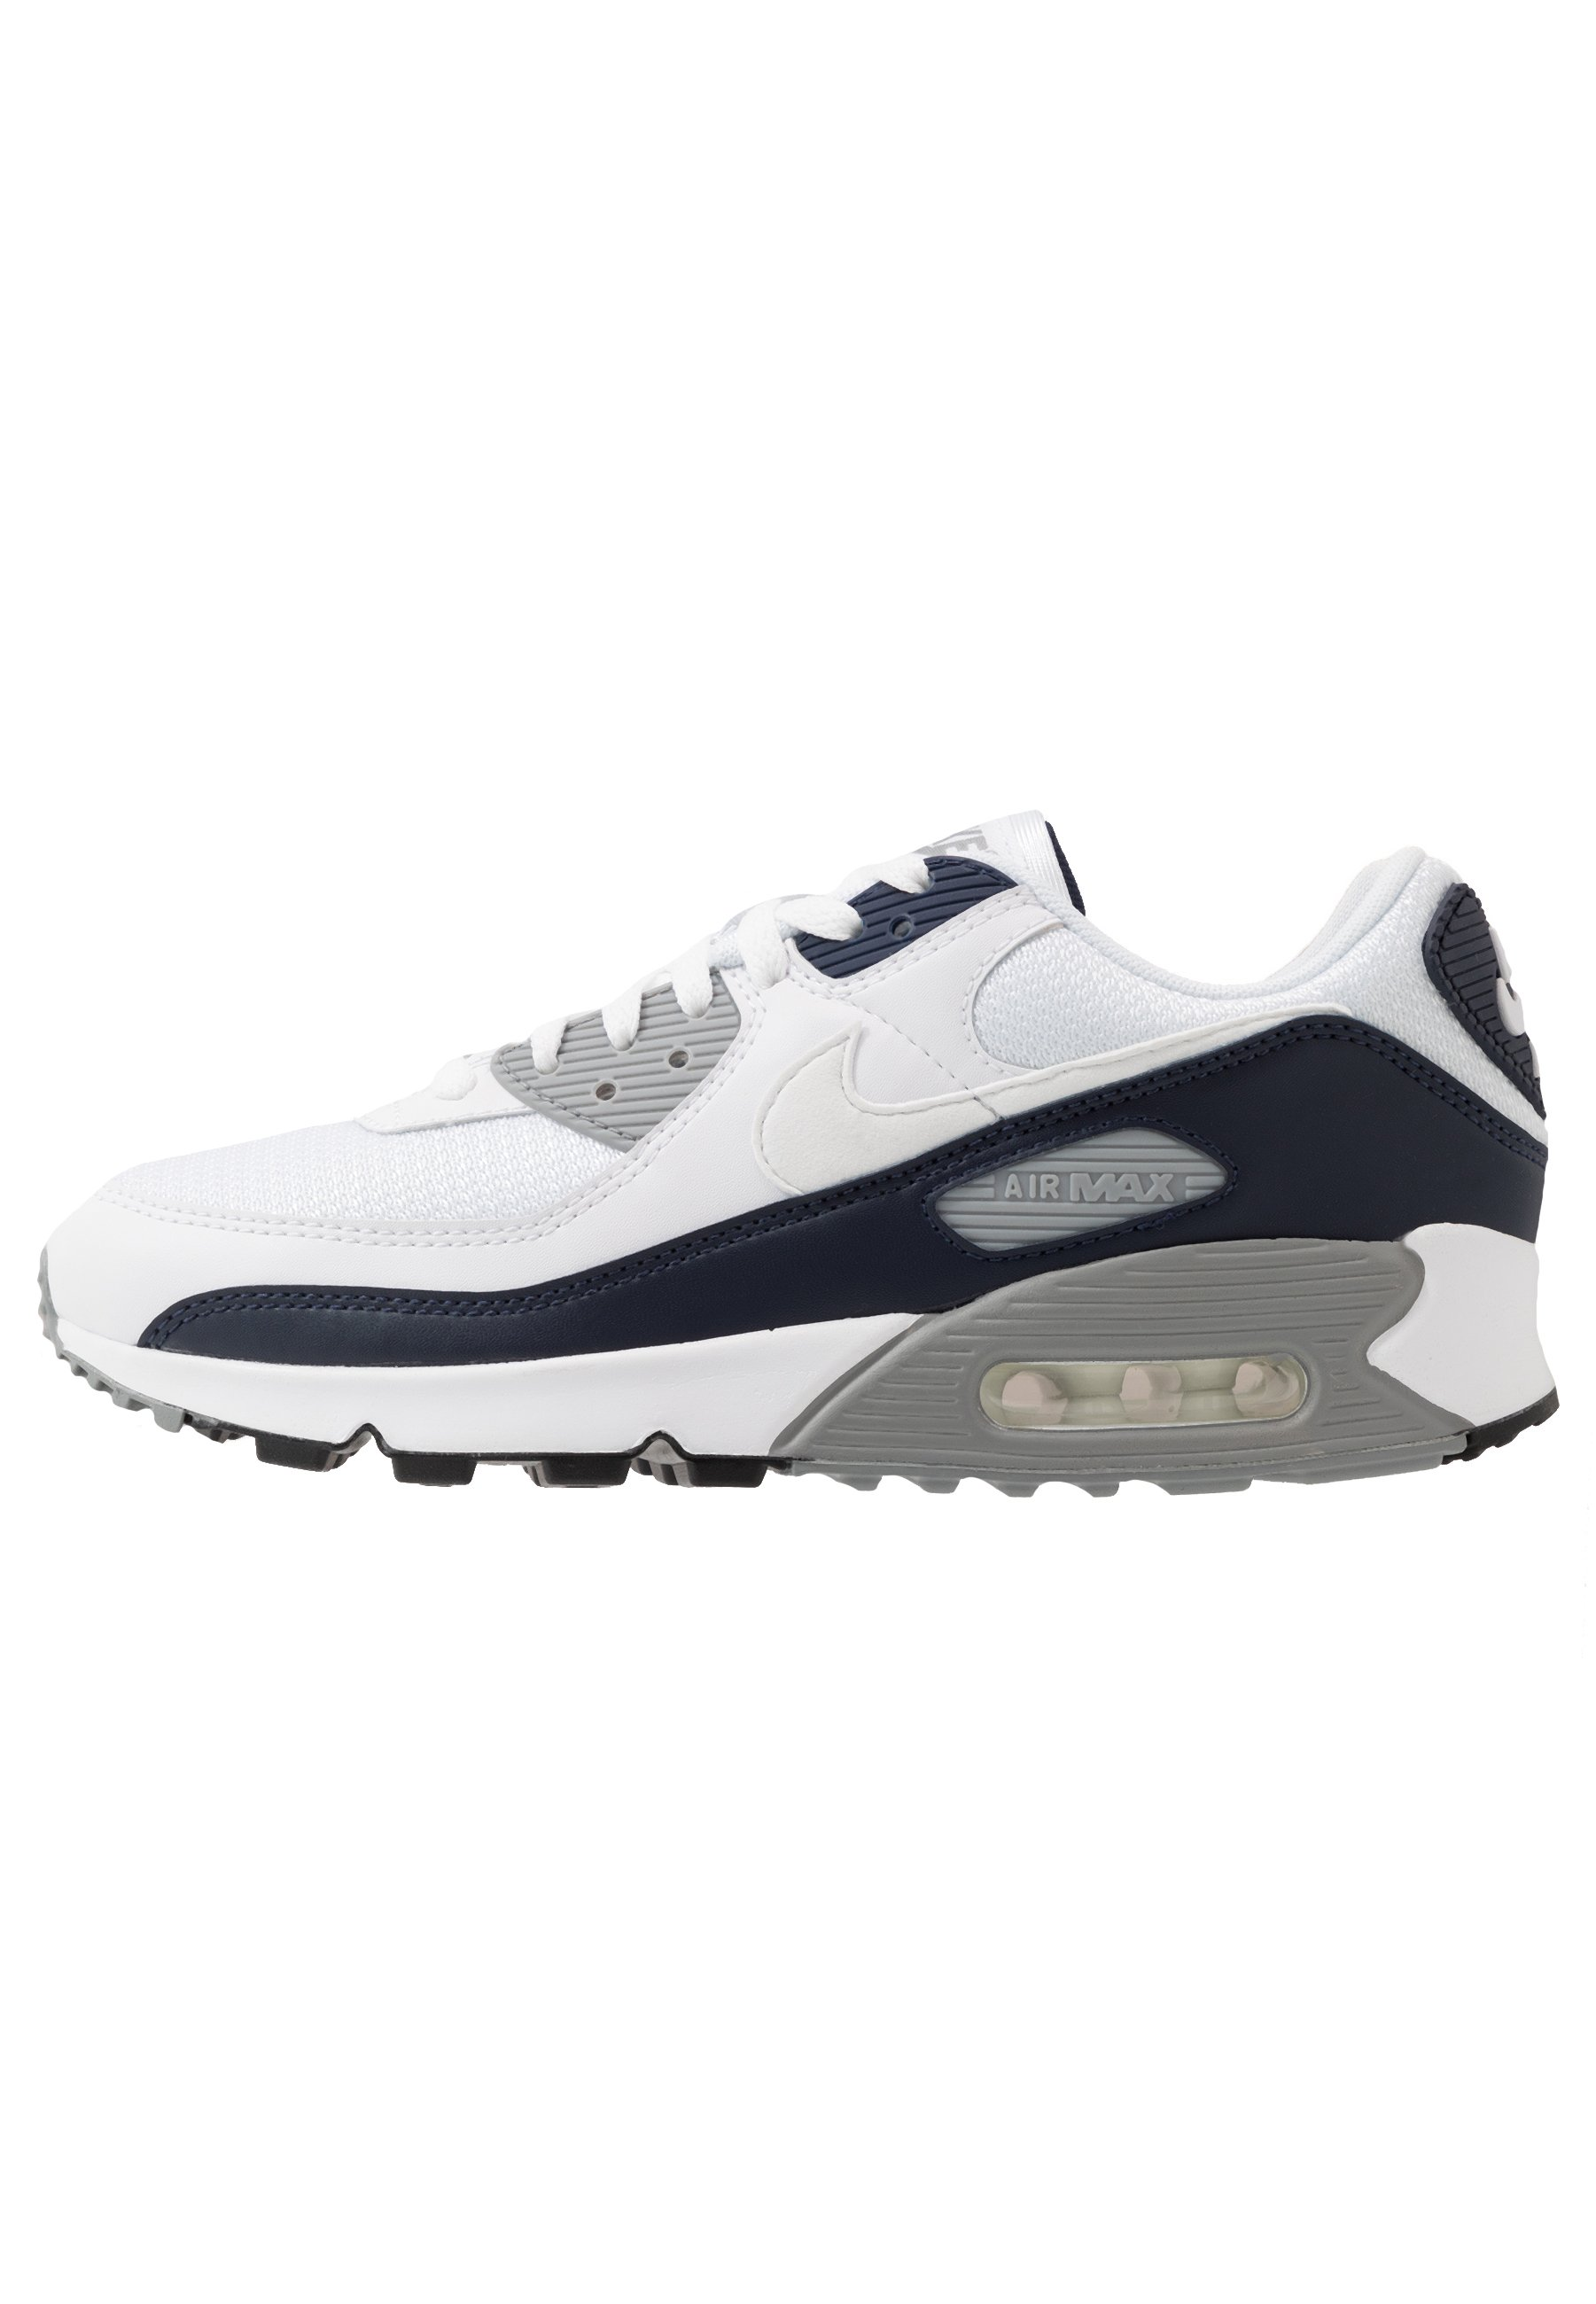 AIR MAX 90 Baskets basses whiteparticle greyobsidian